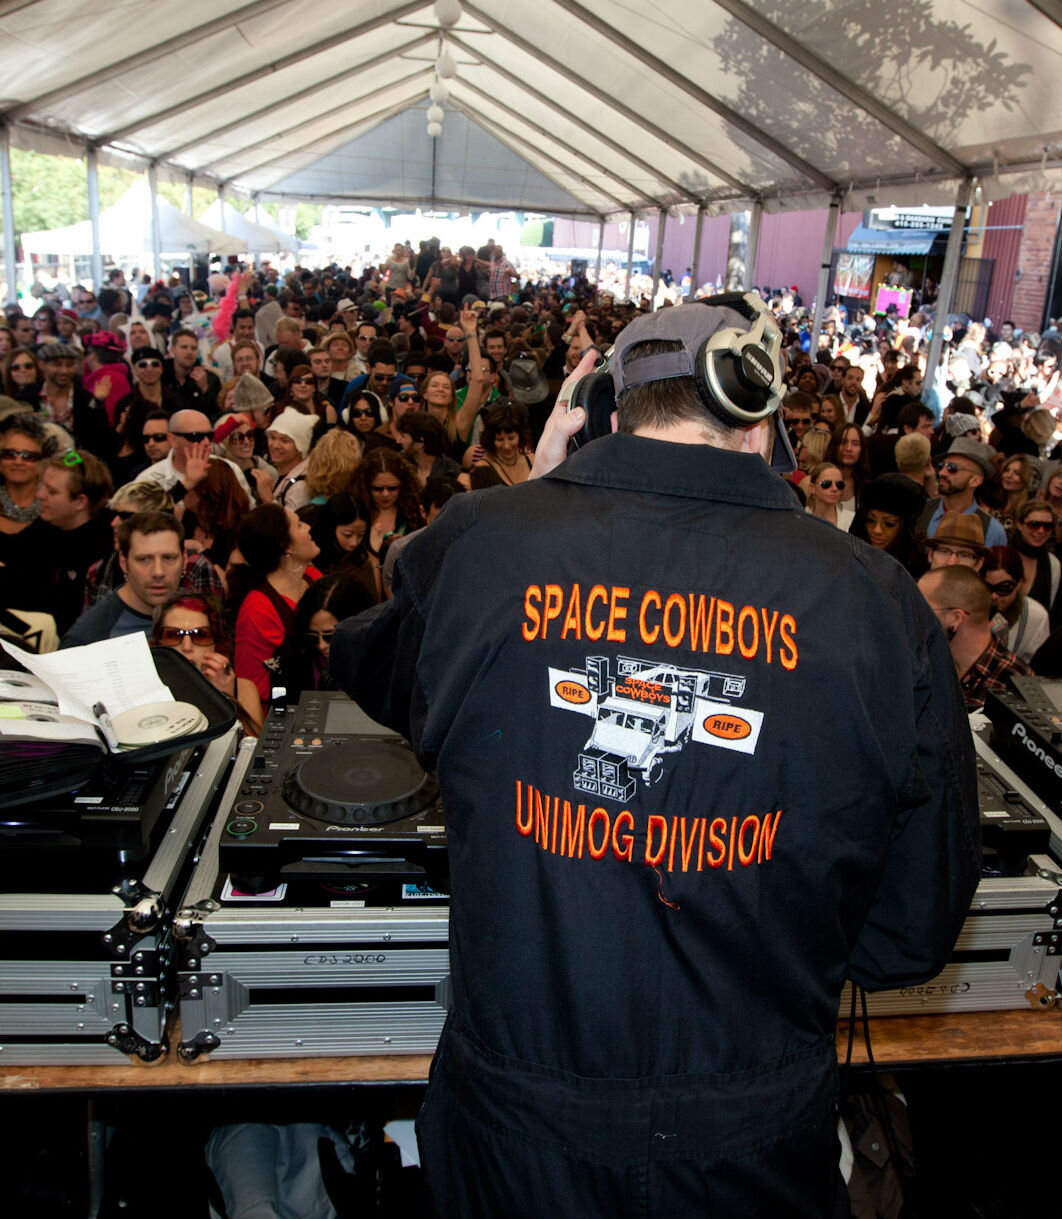 Brad Robinson Space Cowboys Breakfast of Champions Unimog Division-cropped.jpg